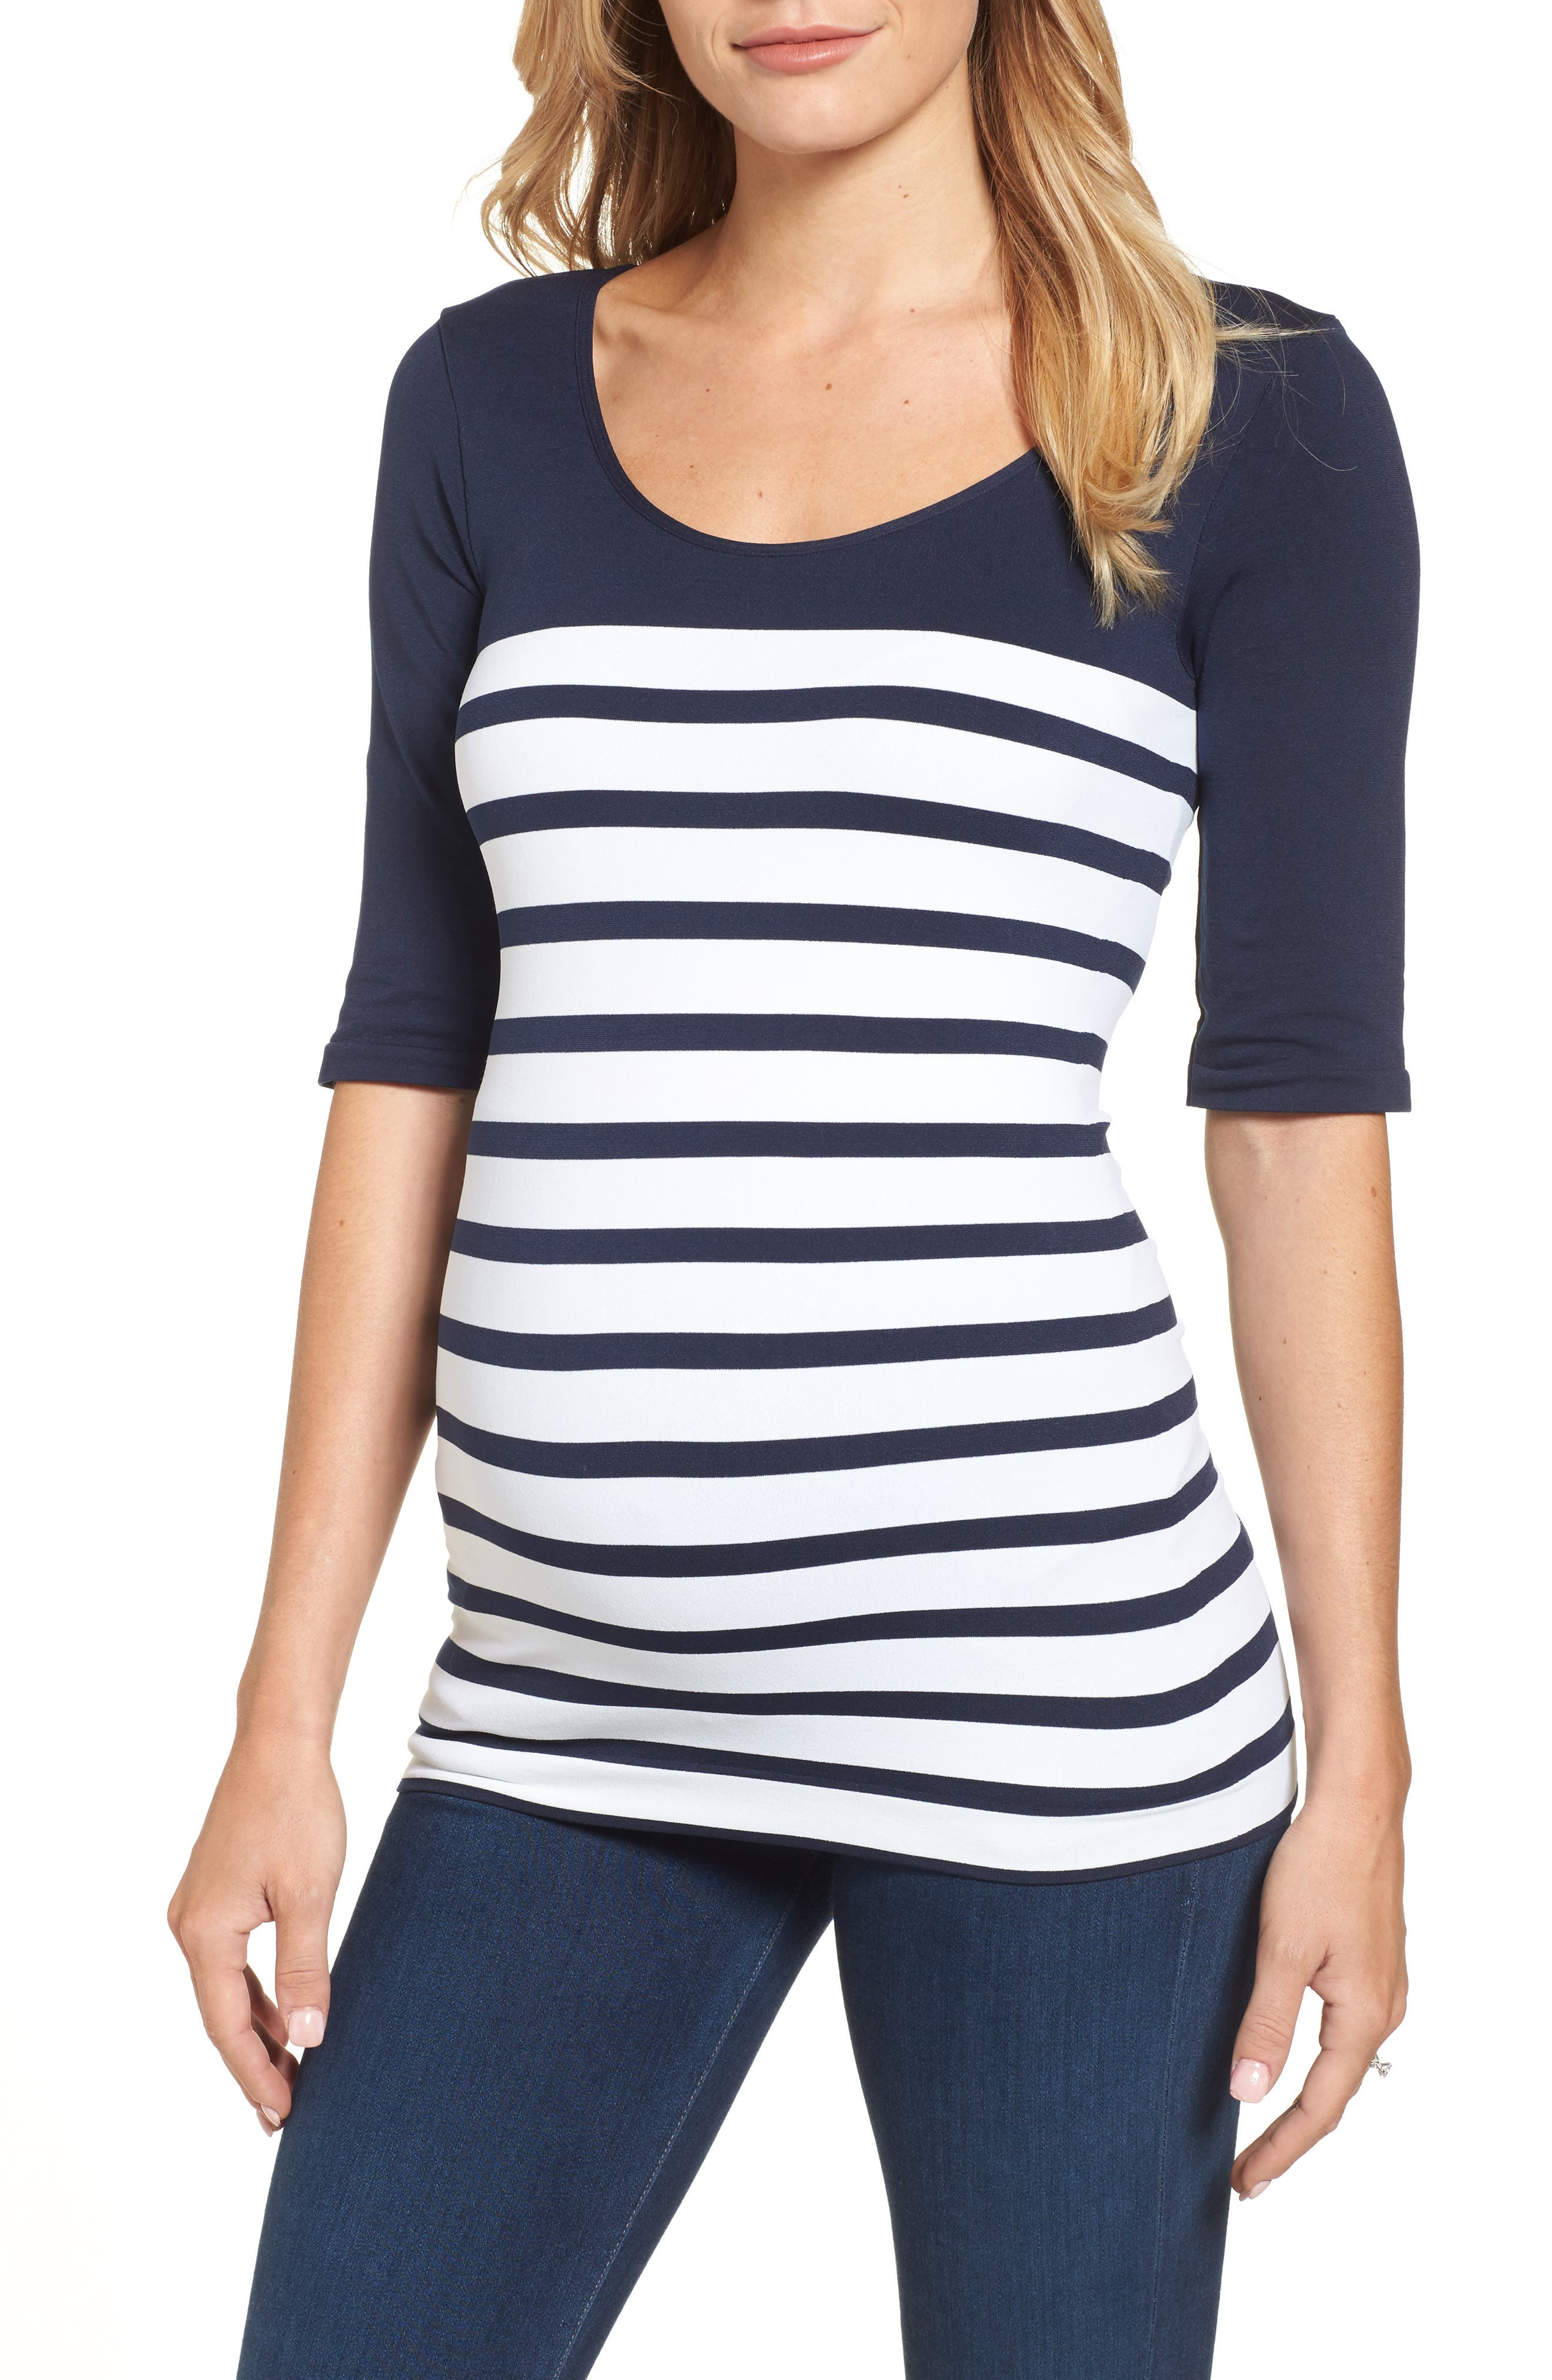 'St. Barts' Ballet Sleeve Maternity Top,                             Alternate thumbnail 2, color,                             NAVY/ WHITE